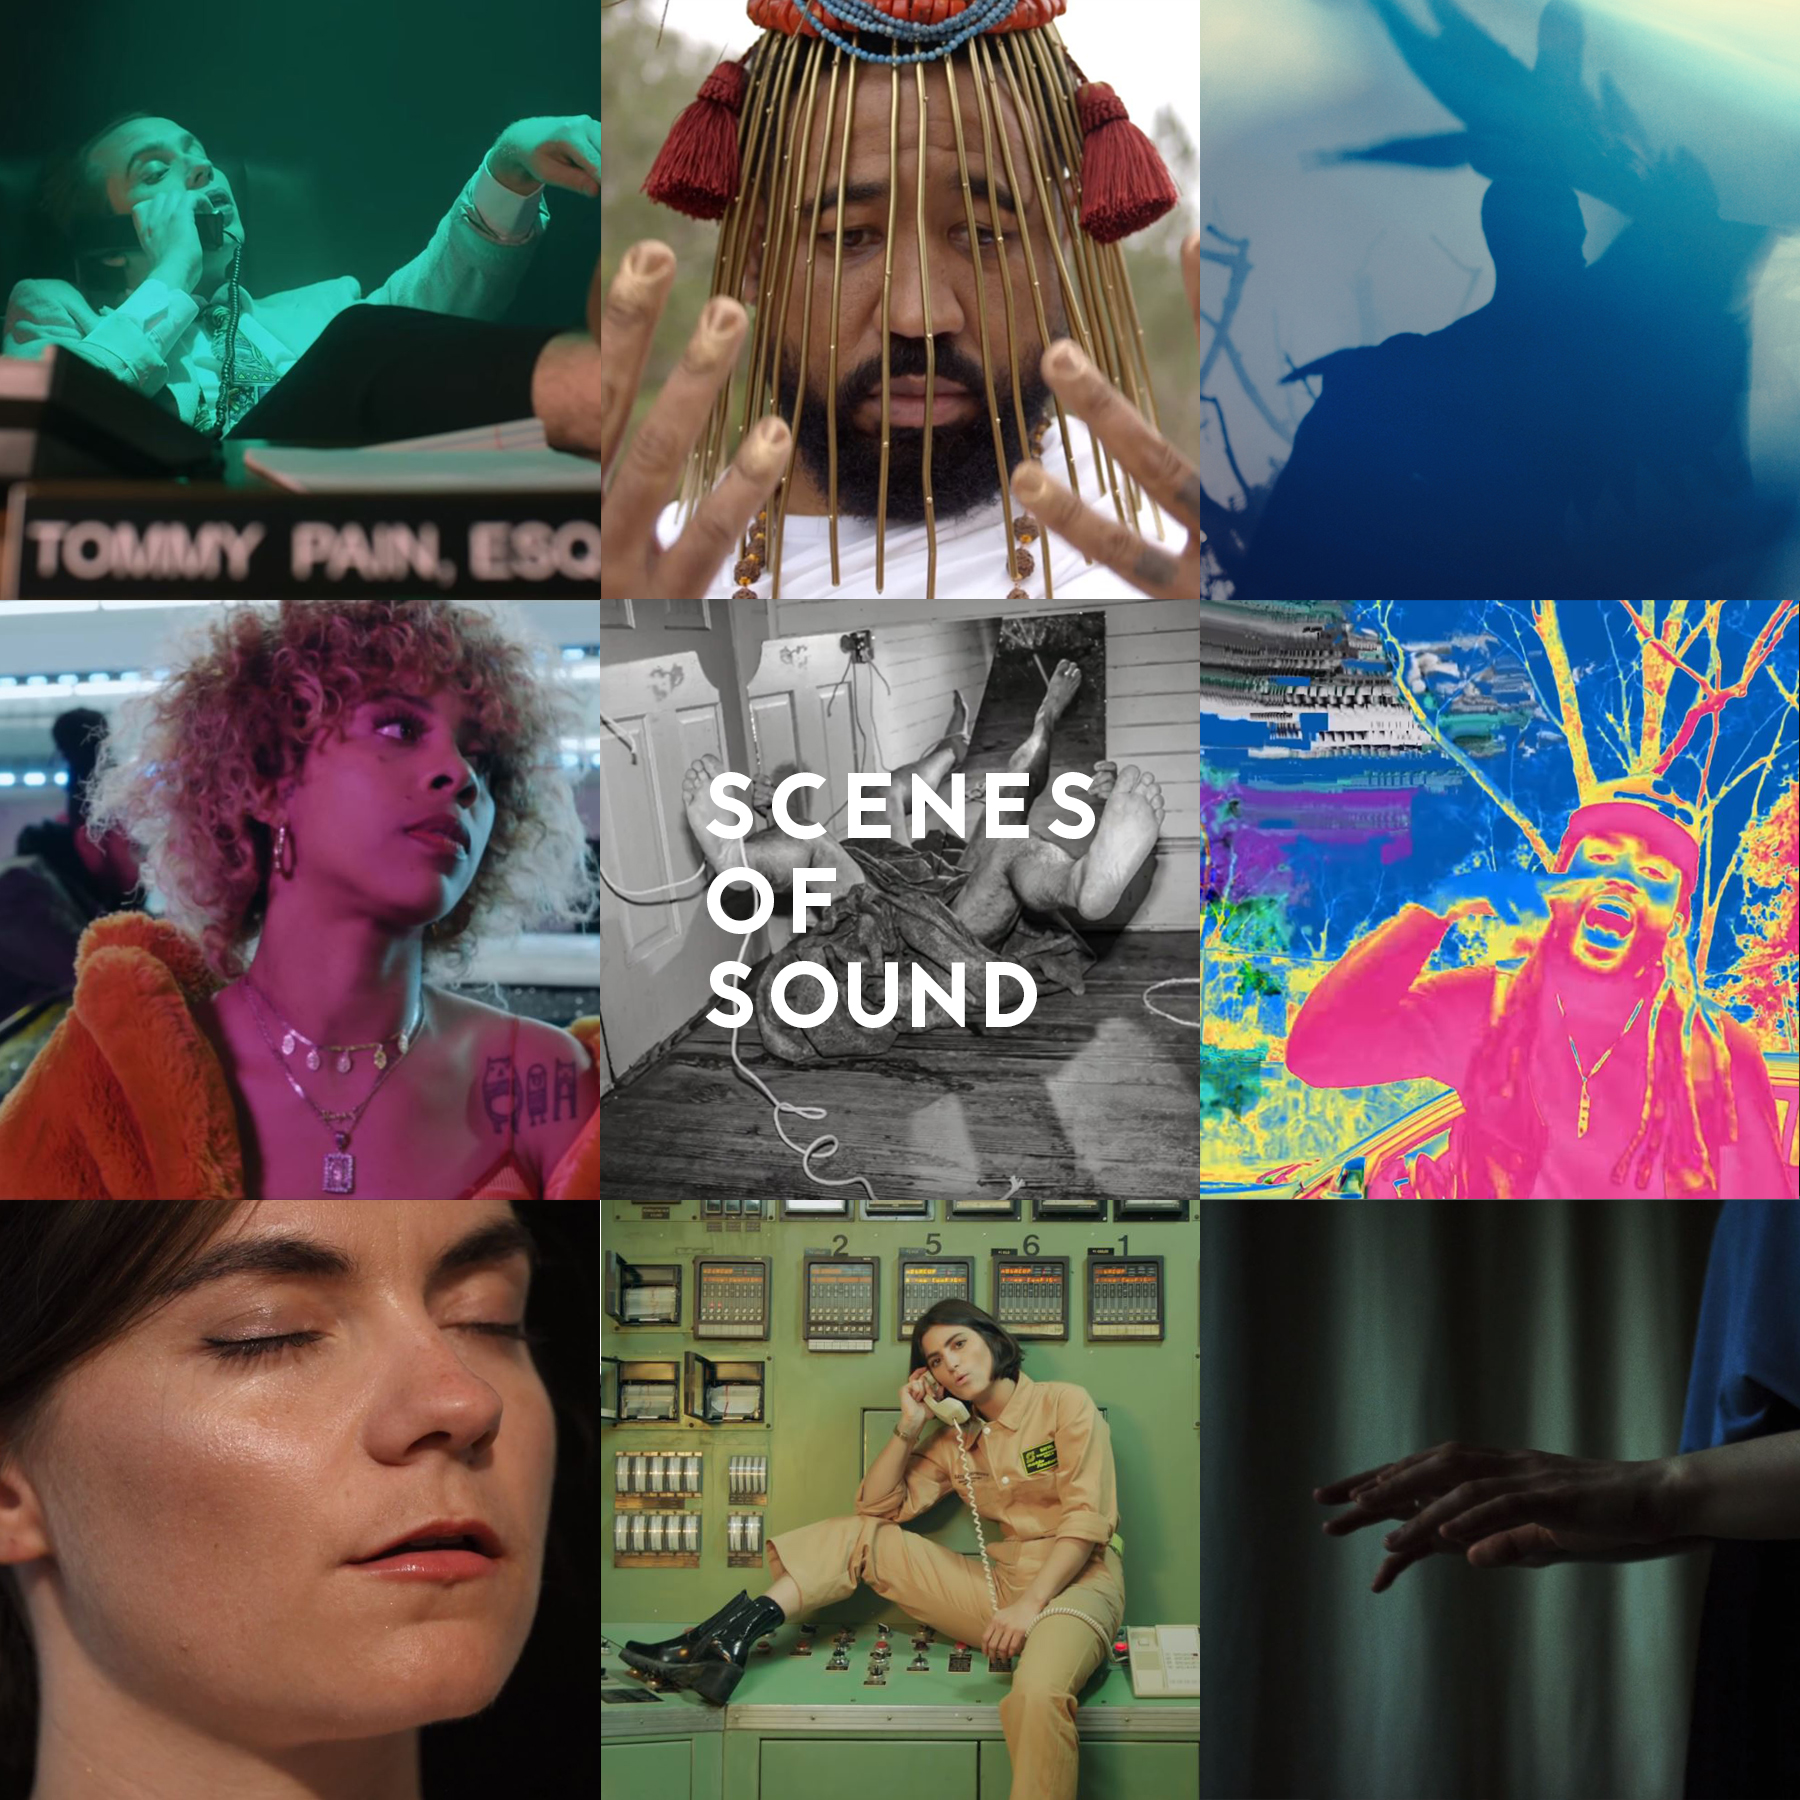 Scenes of Sound - July 14, 2019